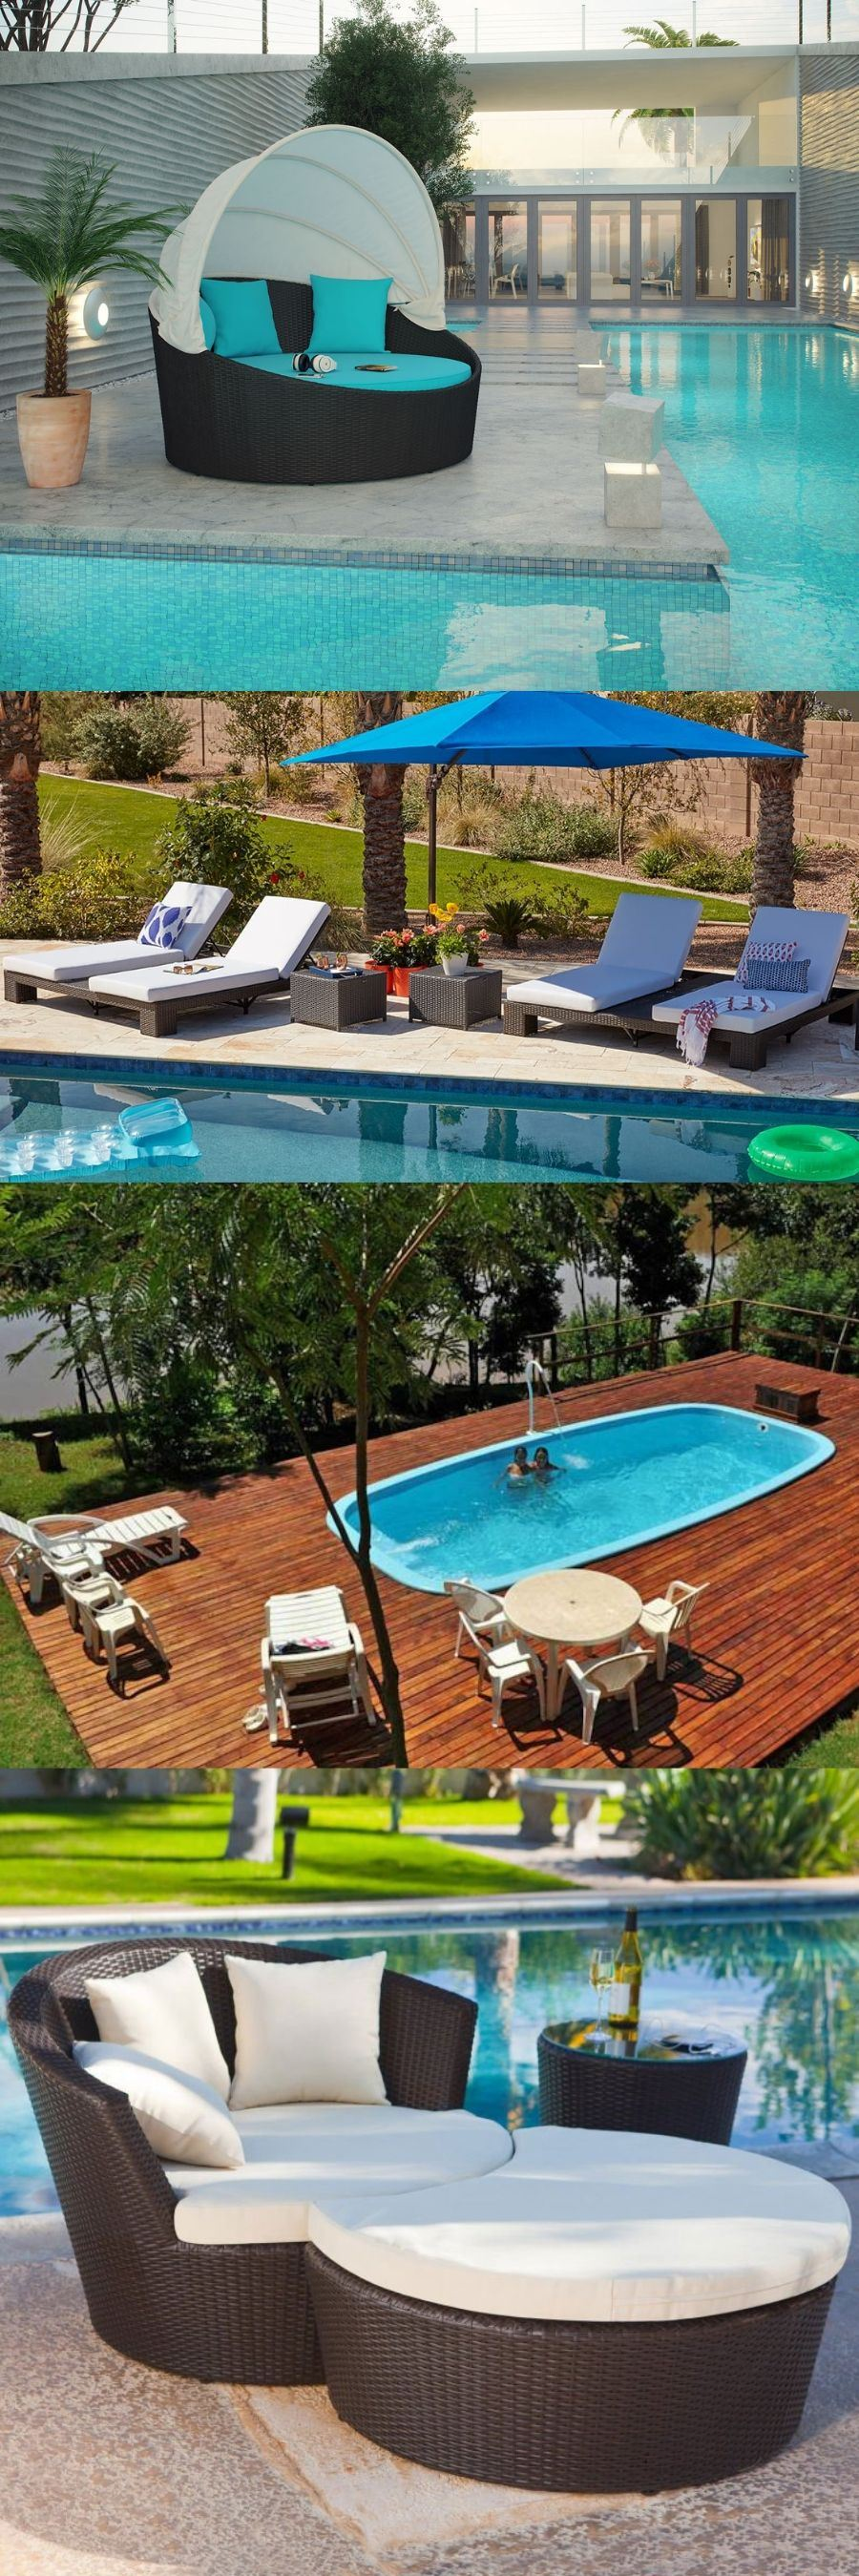 decorating an above ground pool